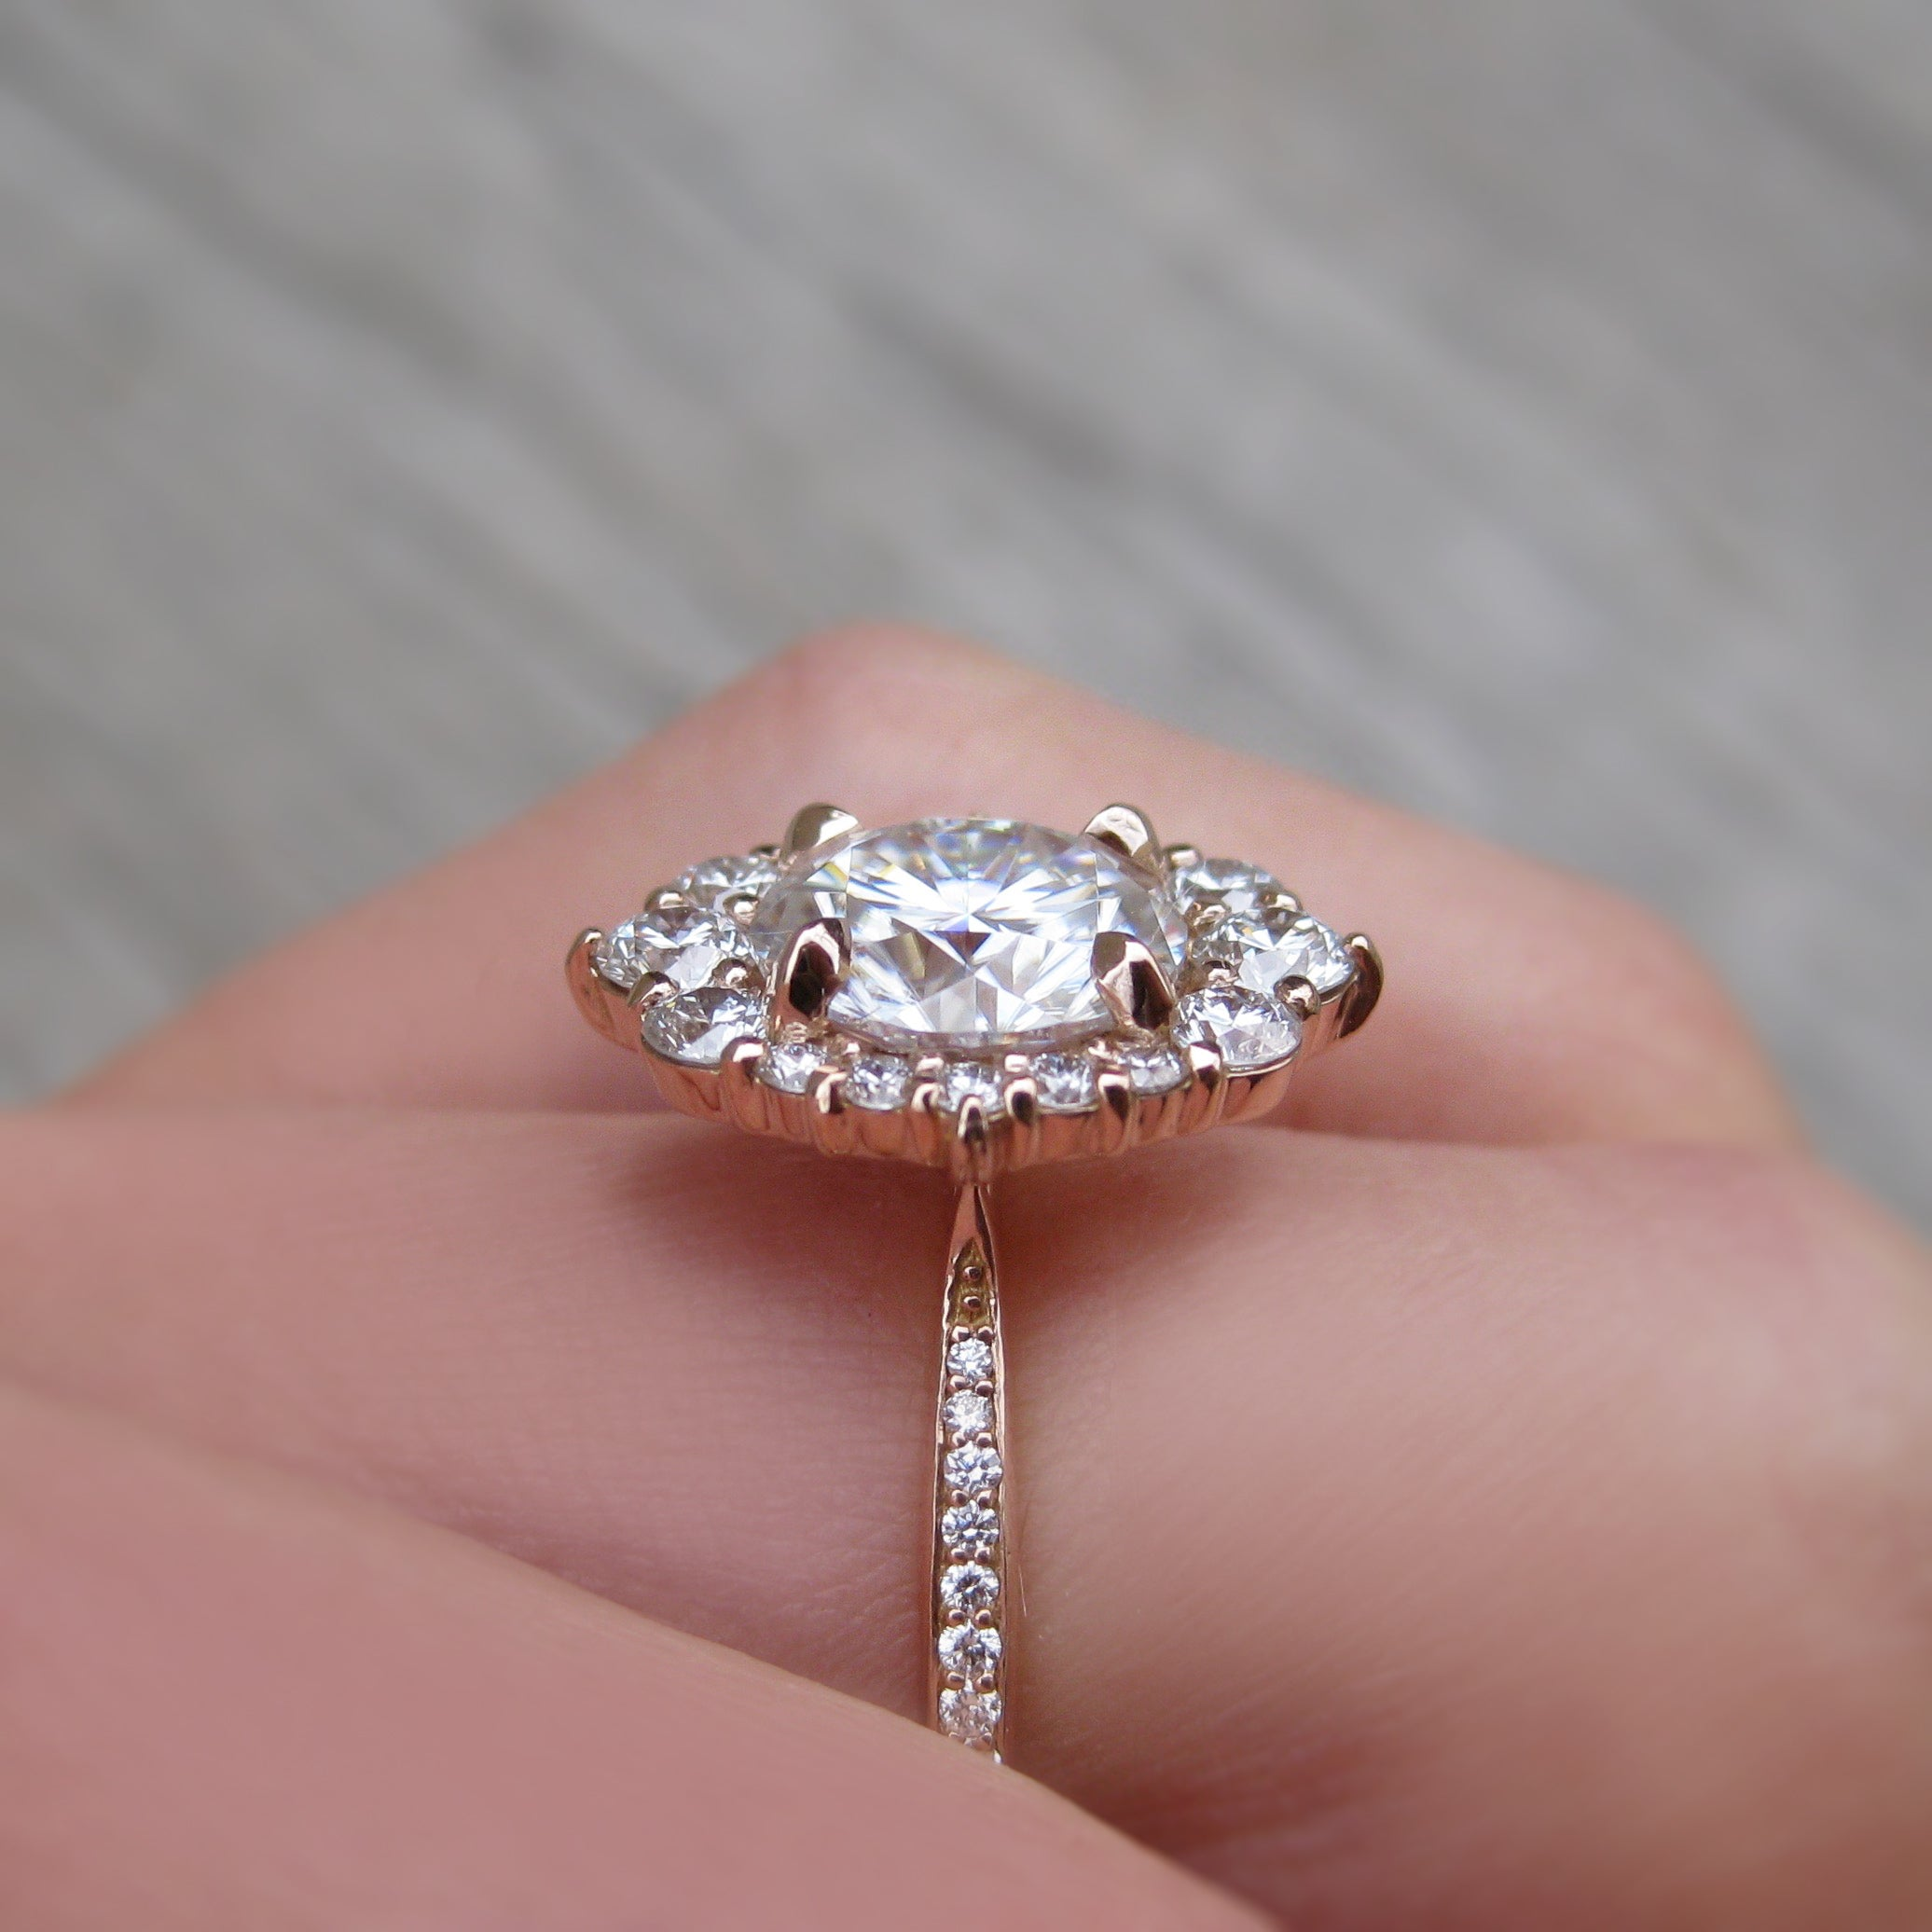 fullxfull wedding fg diamond photo gold karat gallery oval listing morganite under il shape halo color rose